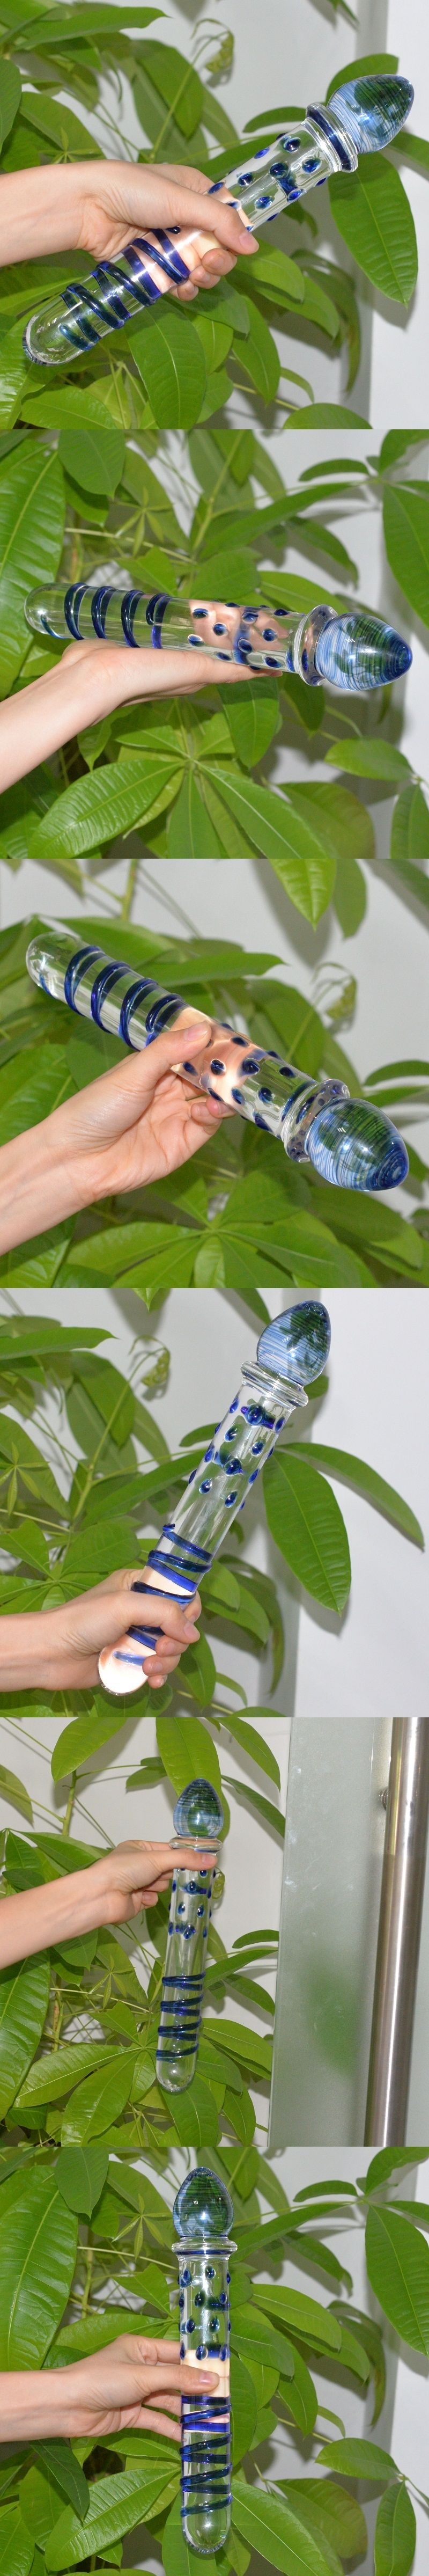 Huge Big Pyrex Glass Dildo Double Ended Headed Crystal Fake Penis Anal Butt  Plug G Spot